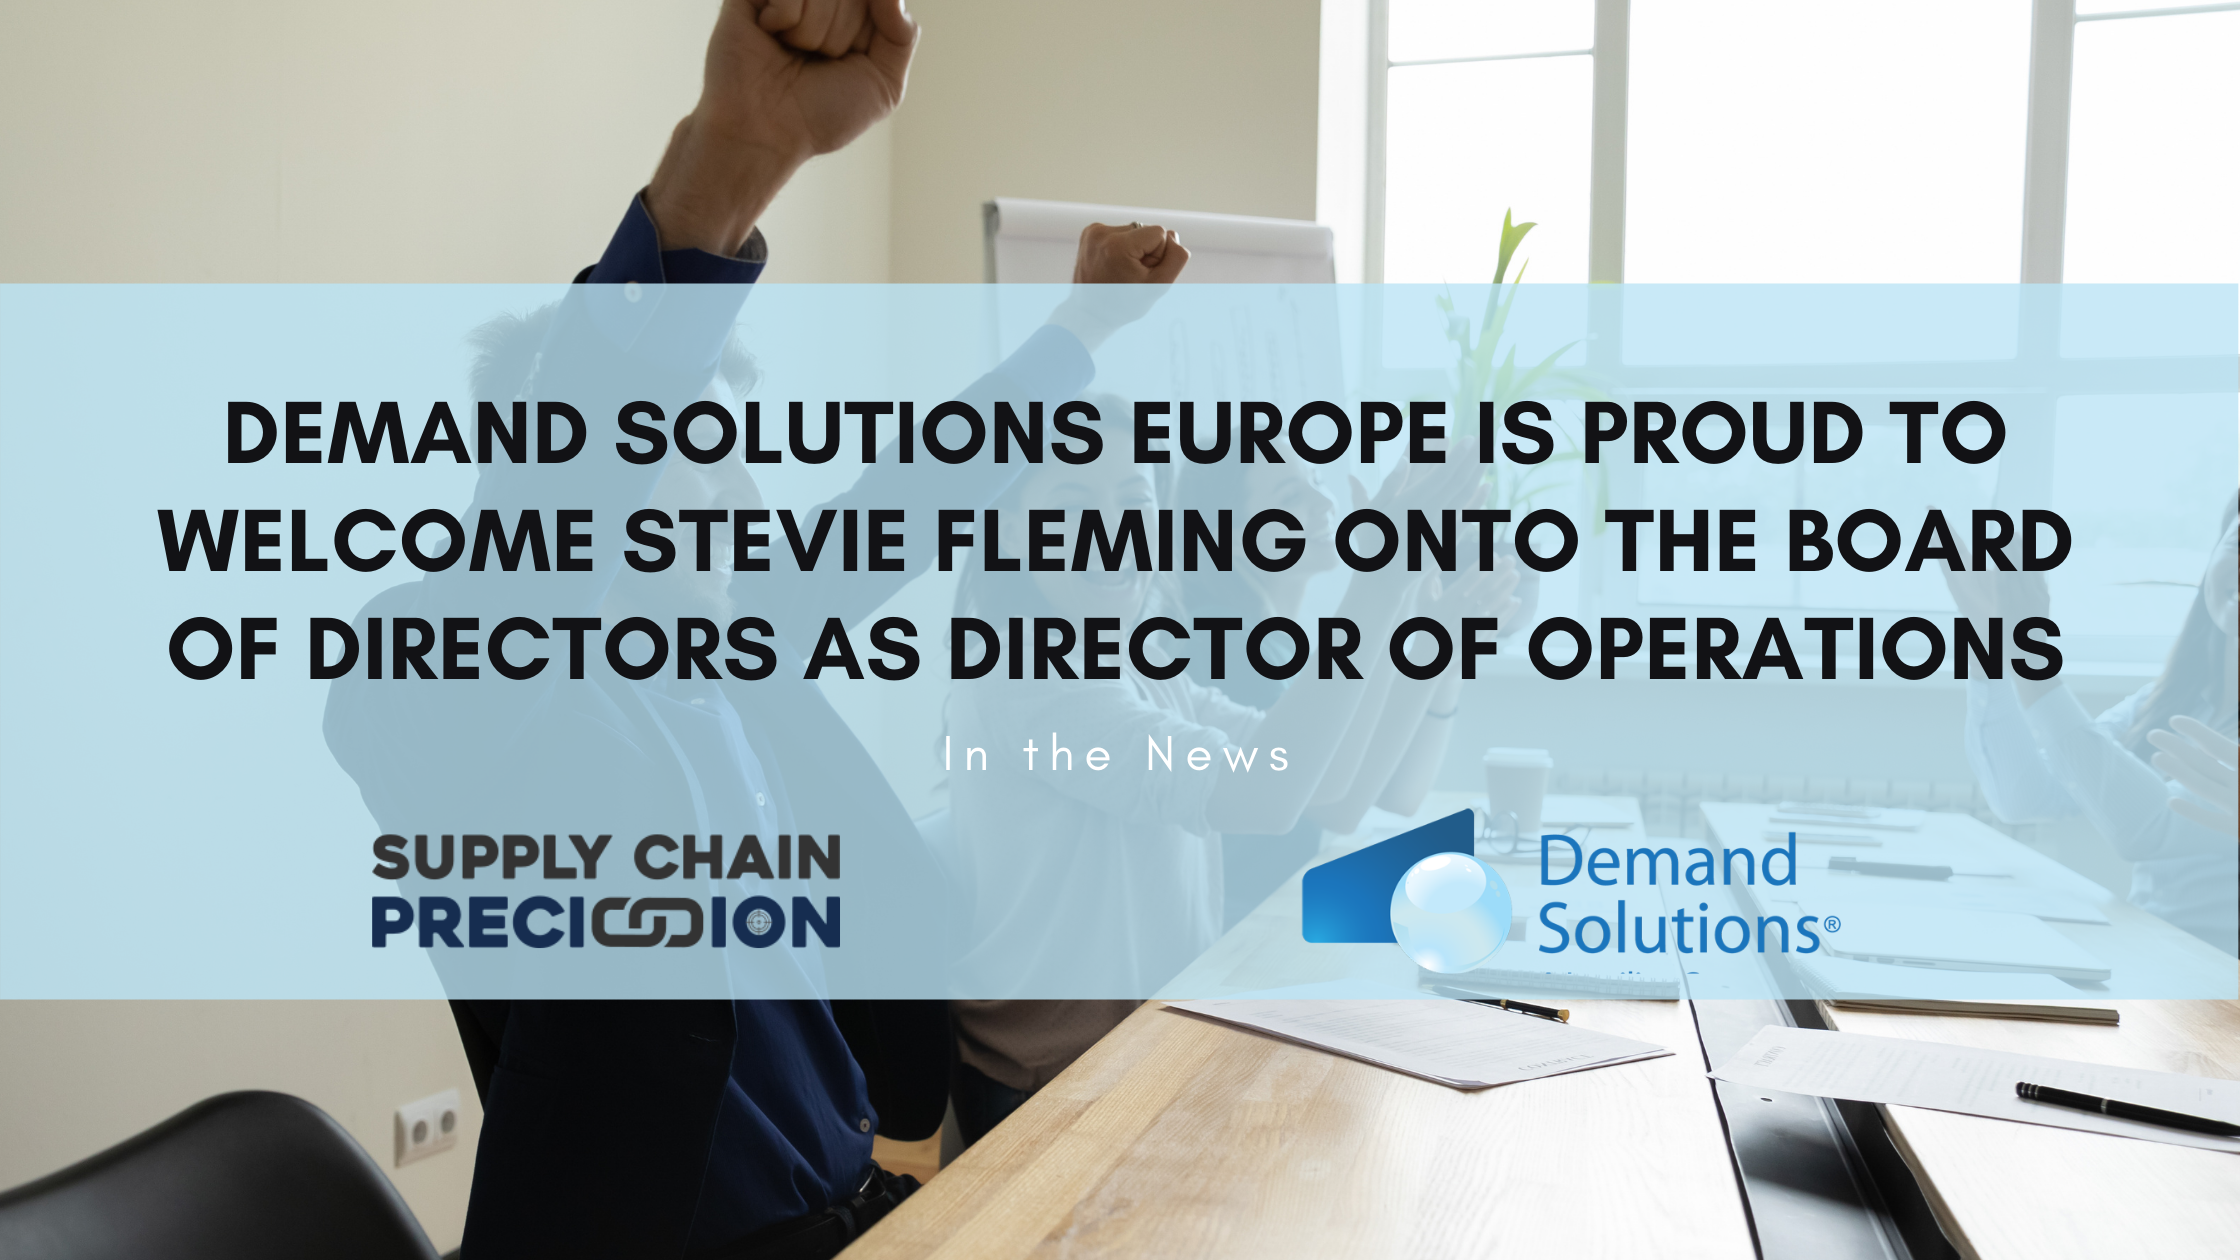 Demand Solutions Europe is proud to welcome Stevie Fleming onto the Board of Directors as Director of Operations